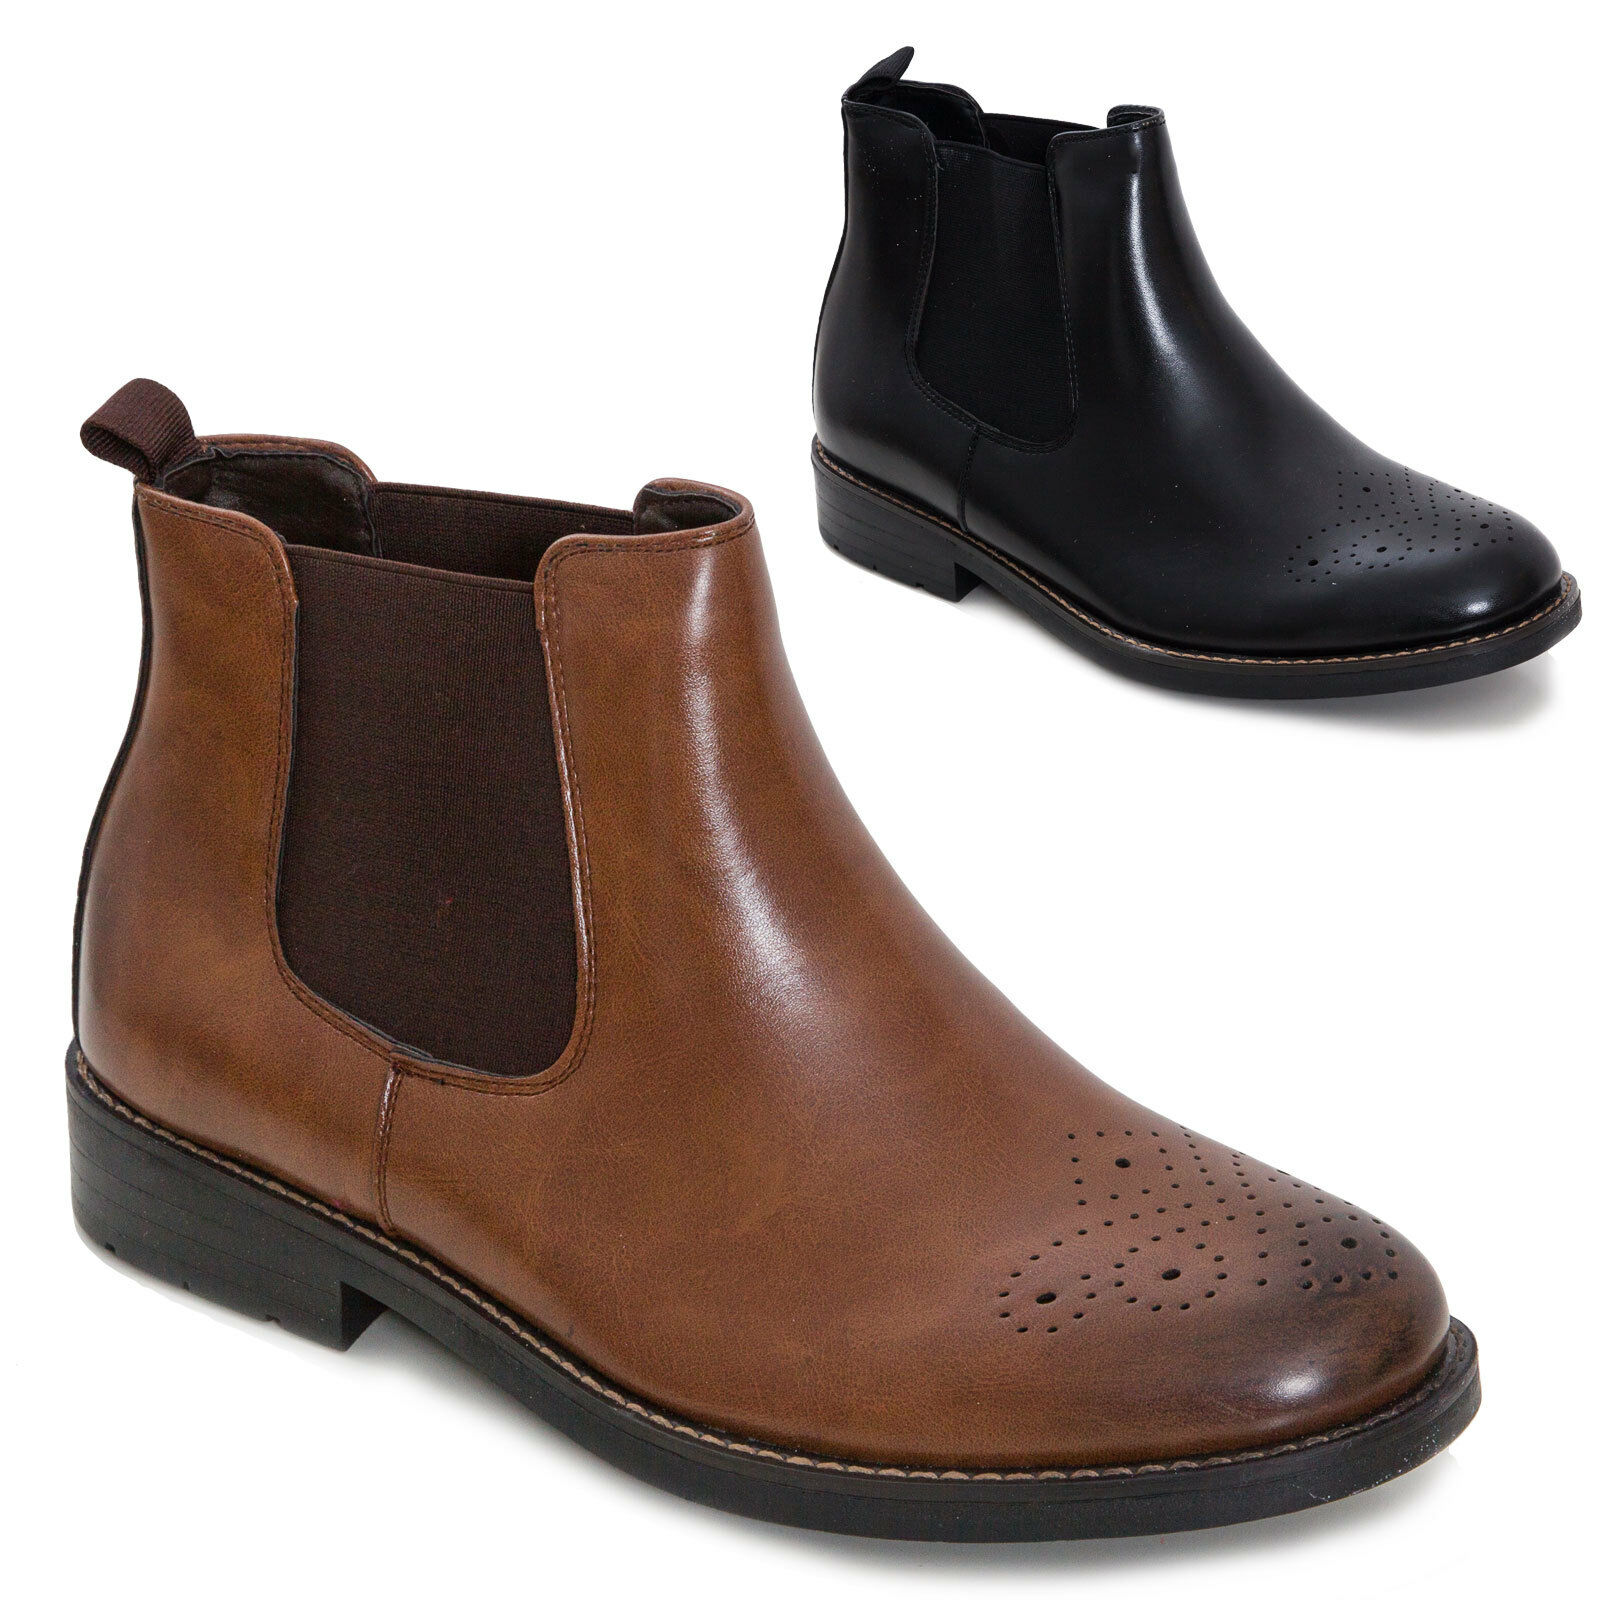 Men's shoes booties elastic velour lace-up eco-leather elegant perforated 82-978